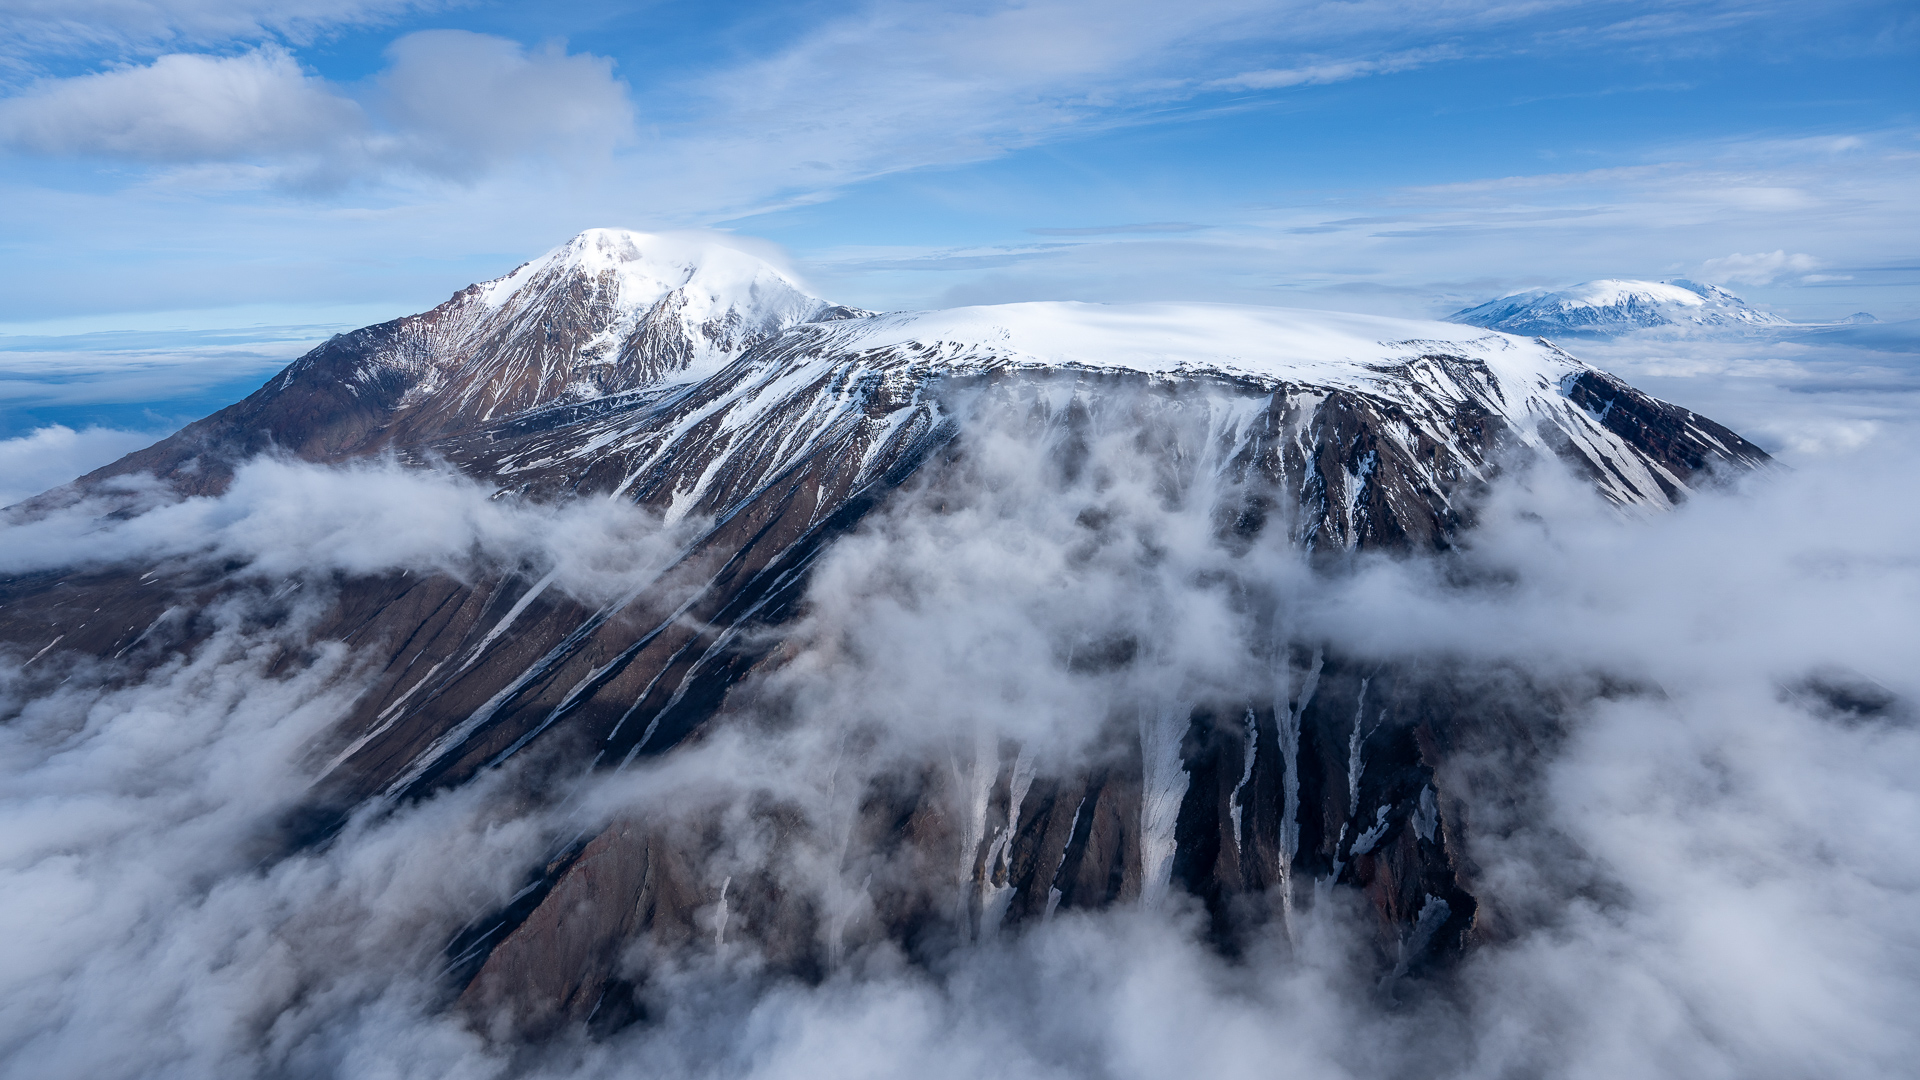 Kamchatka from volcanoes and the mountains